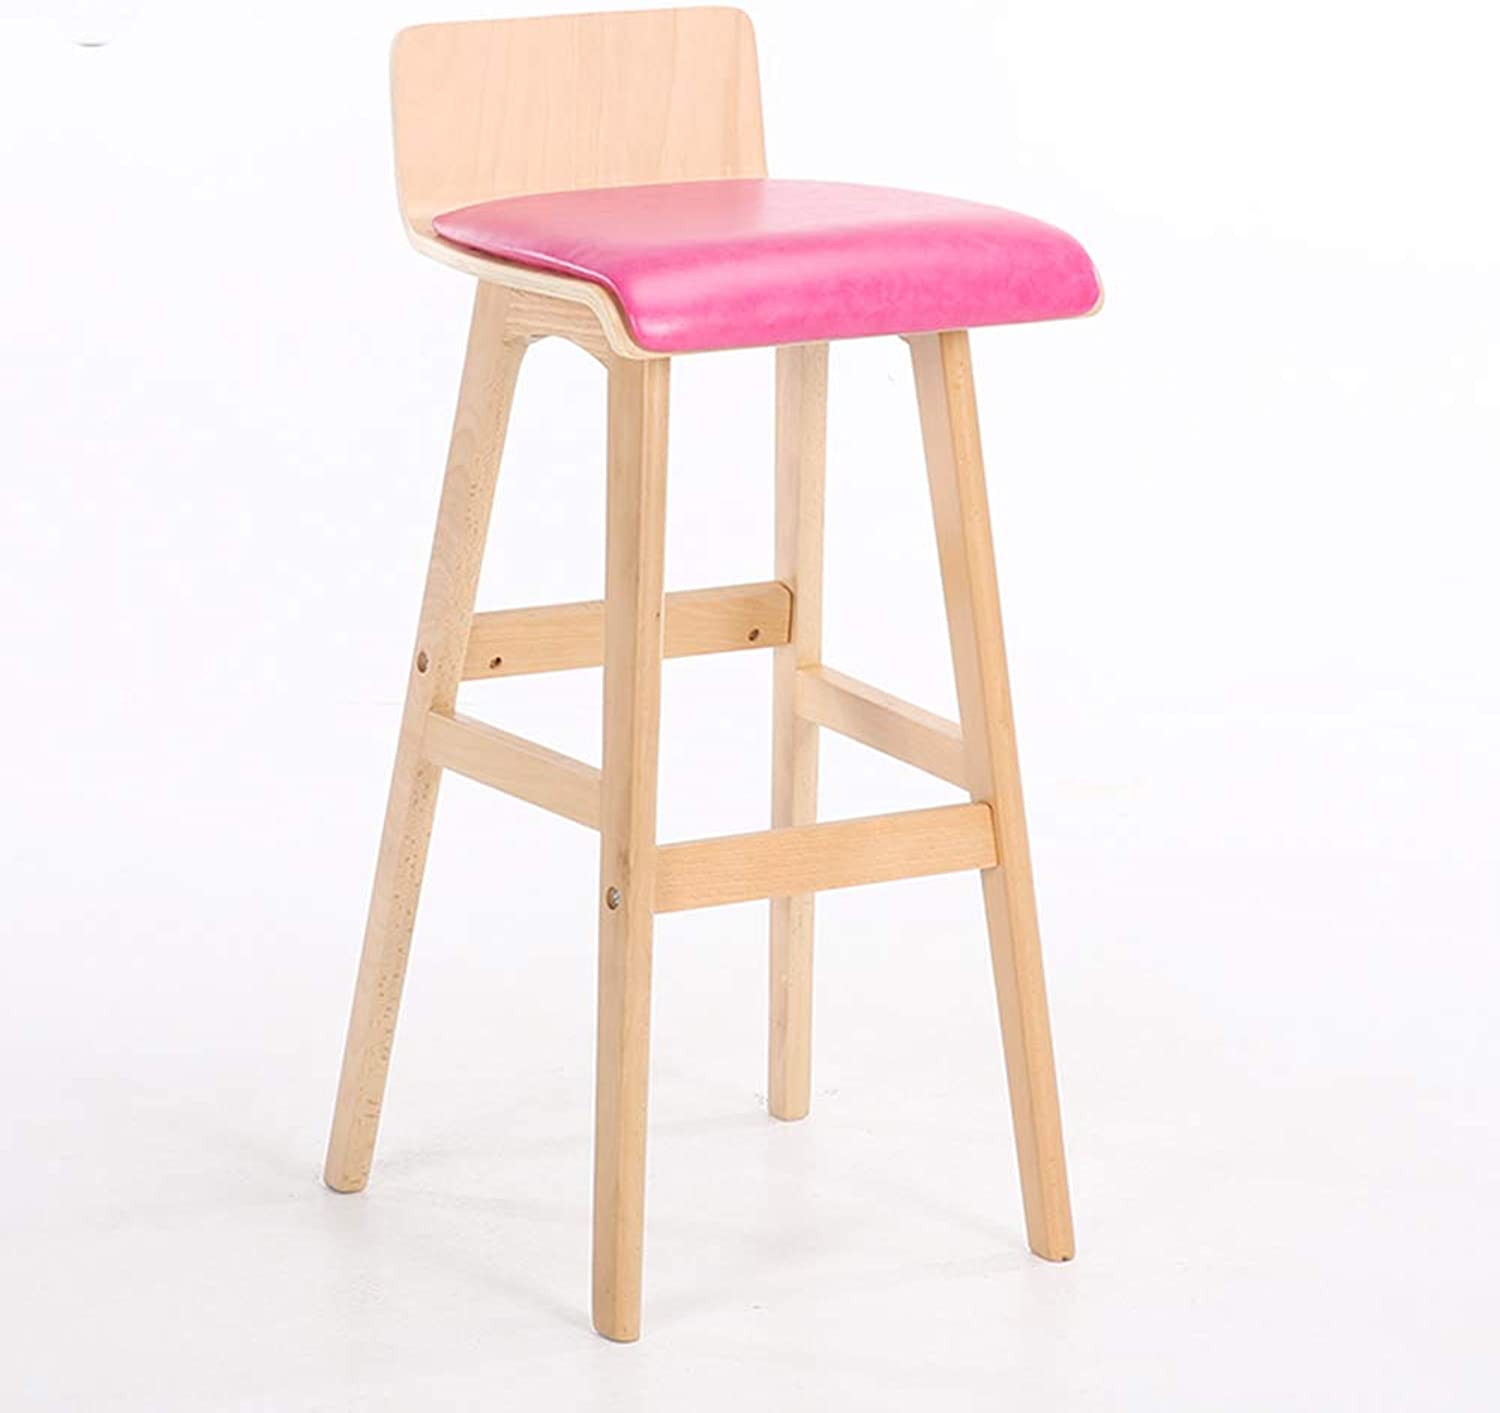 Bar Chair, Breakfast Chair Kitchen Restaurant Cafe Wood Multi-color Optional HPLL (color   7, Size   40  75cm)